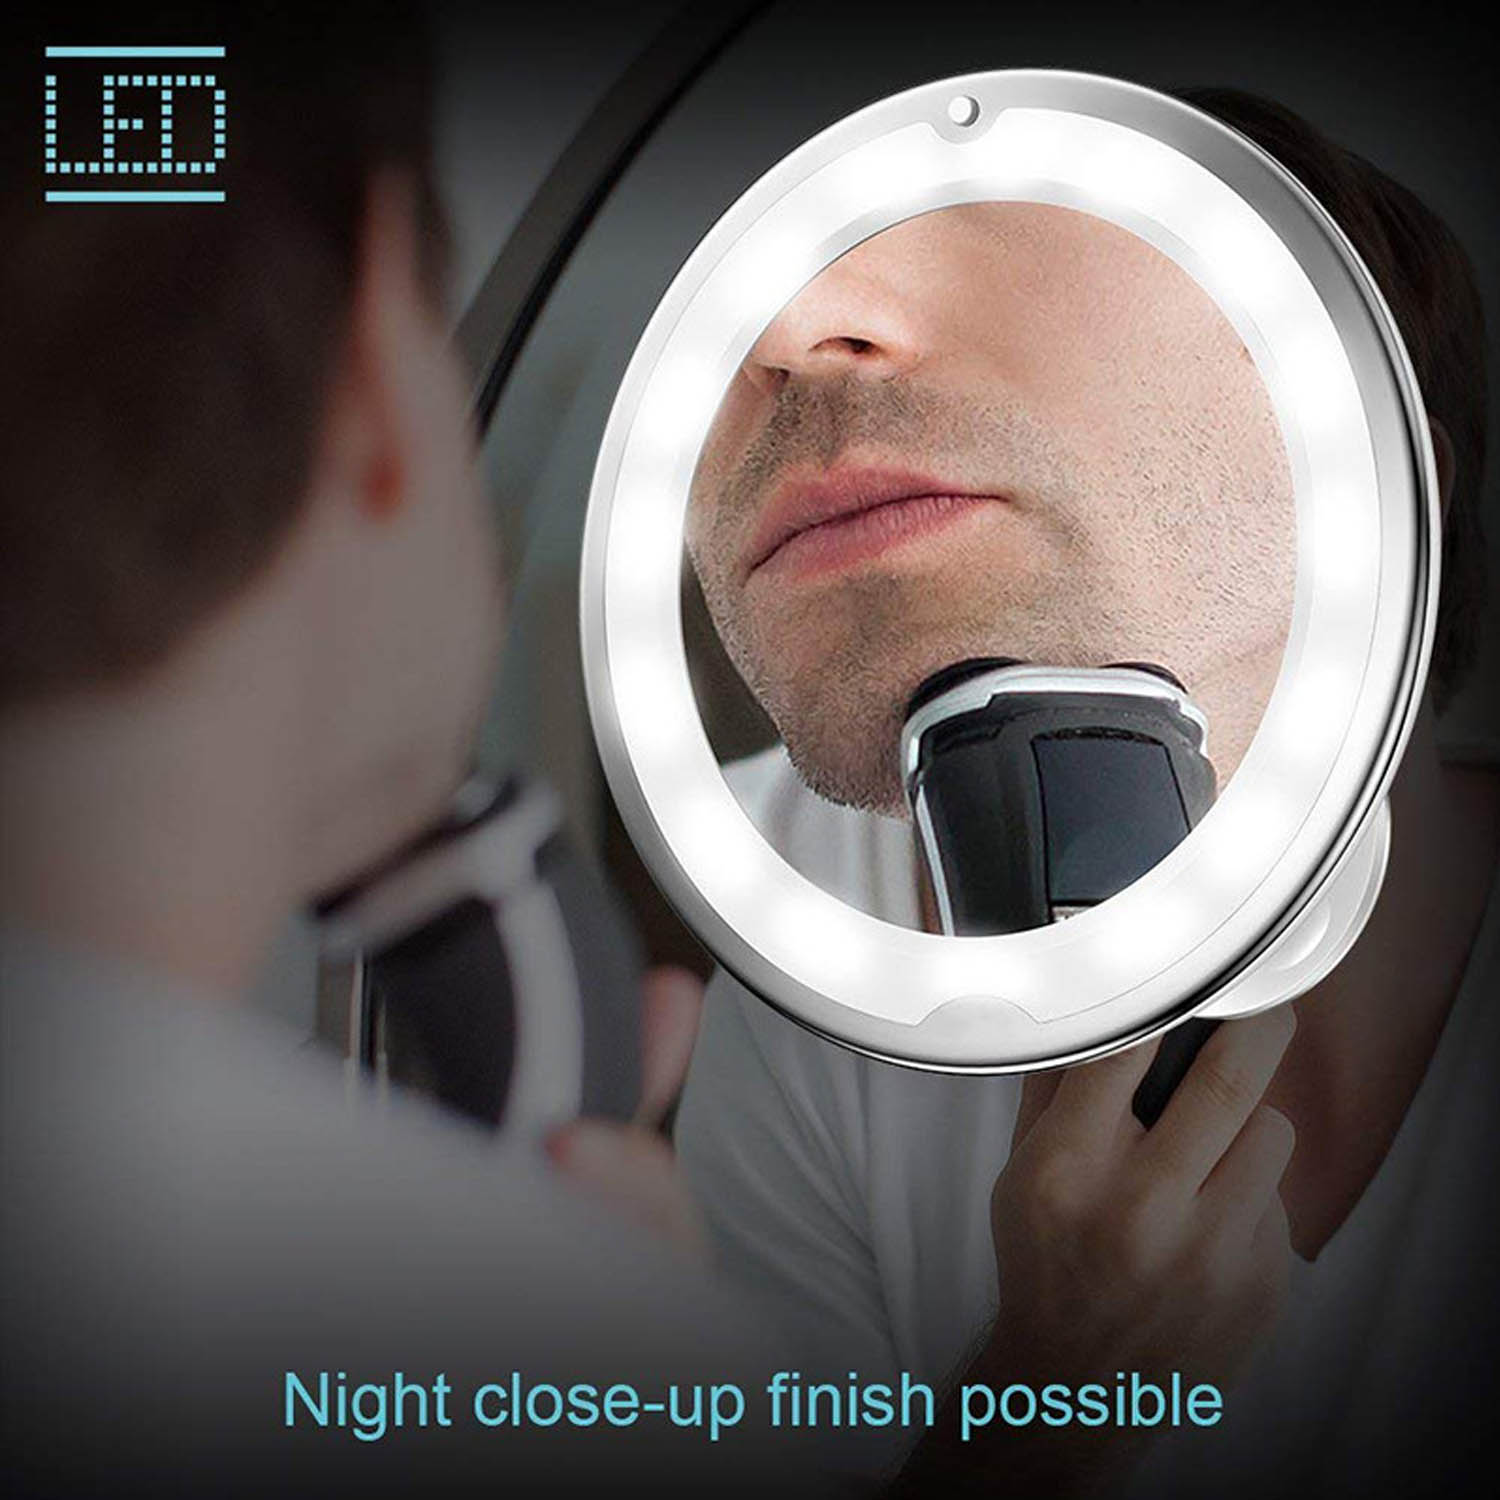 360 Degree Rotation LED 10x Magnification Makeup Mirror with Suction Cup for Bedroom Bathroom Dressing Table Makeup Room